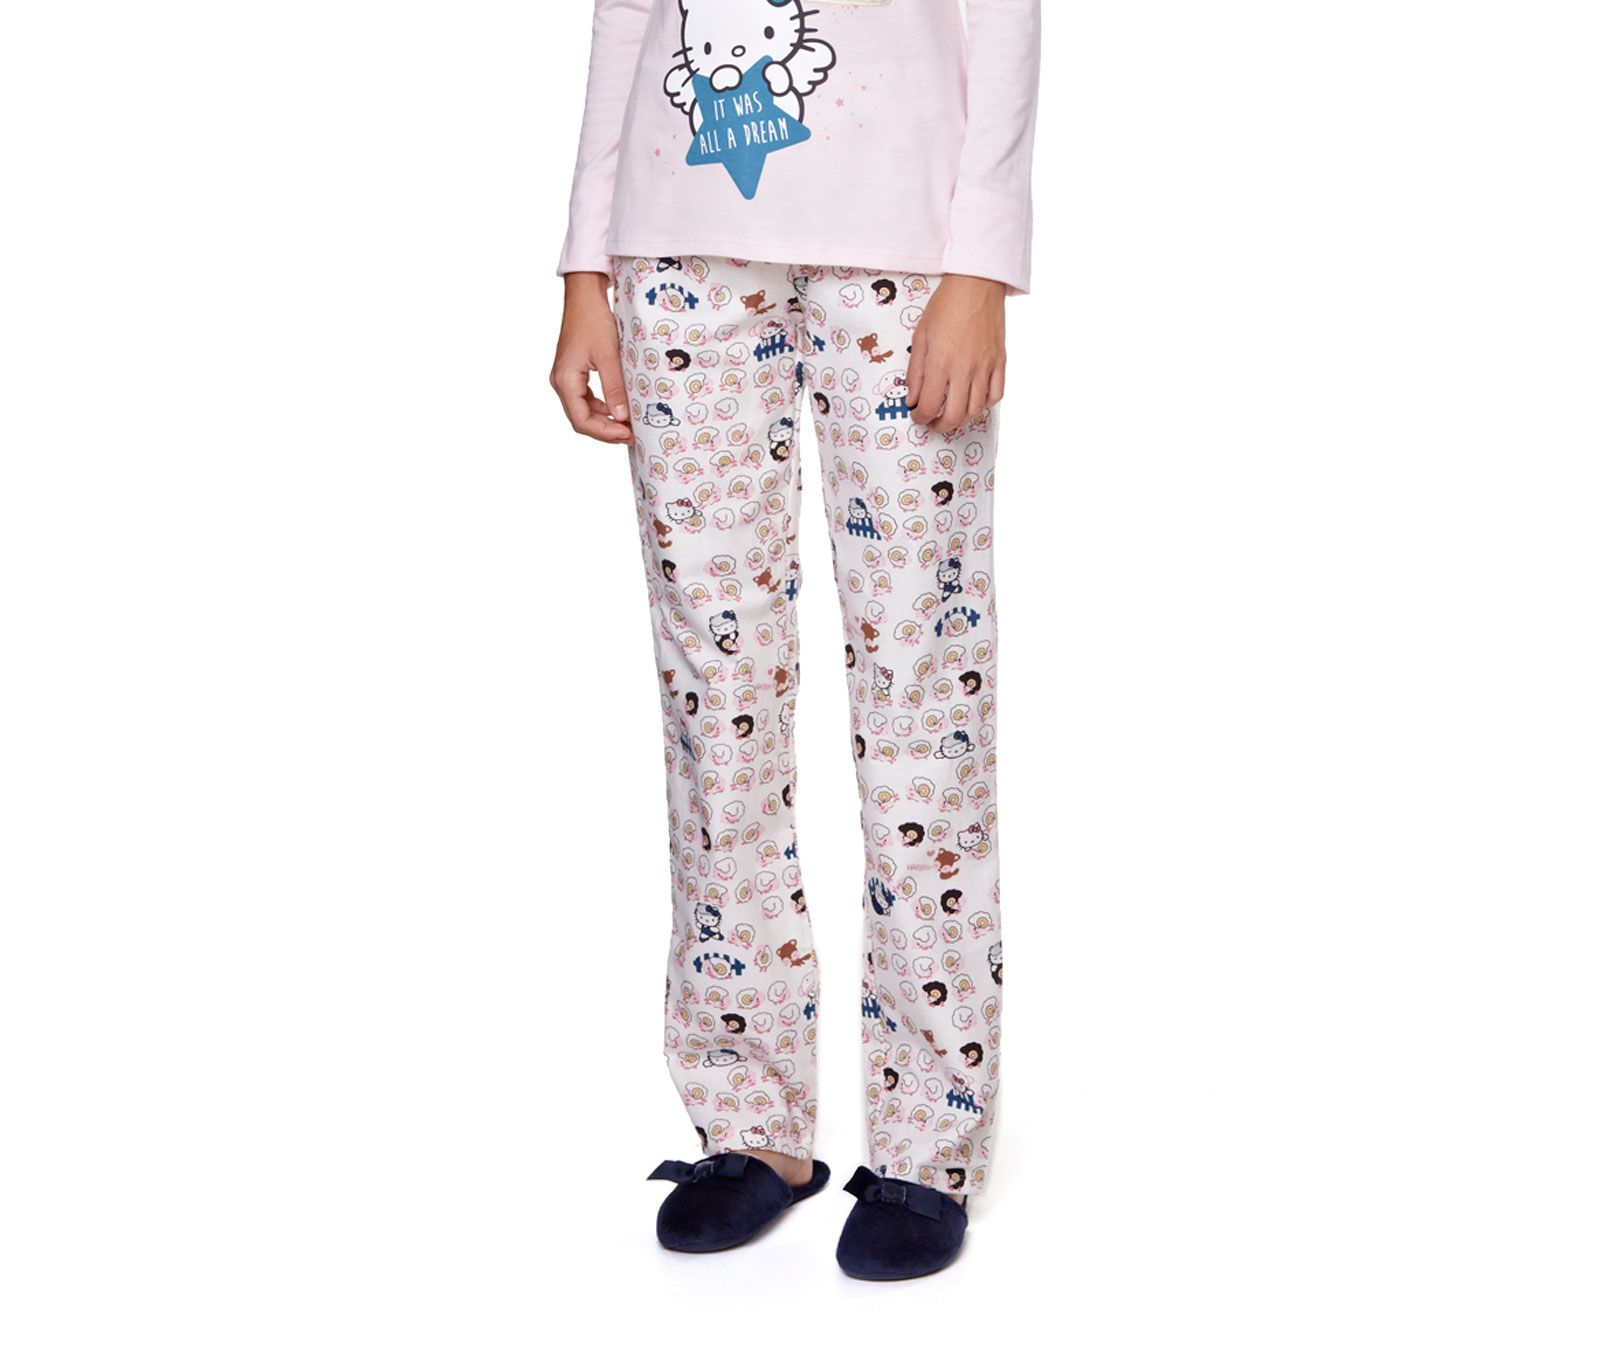 6e64a900d OYSHO Hello Kitty pj nightwear | Licensed Products Inspiration ...